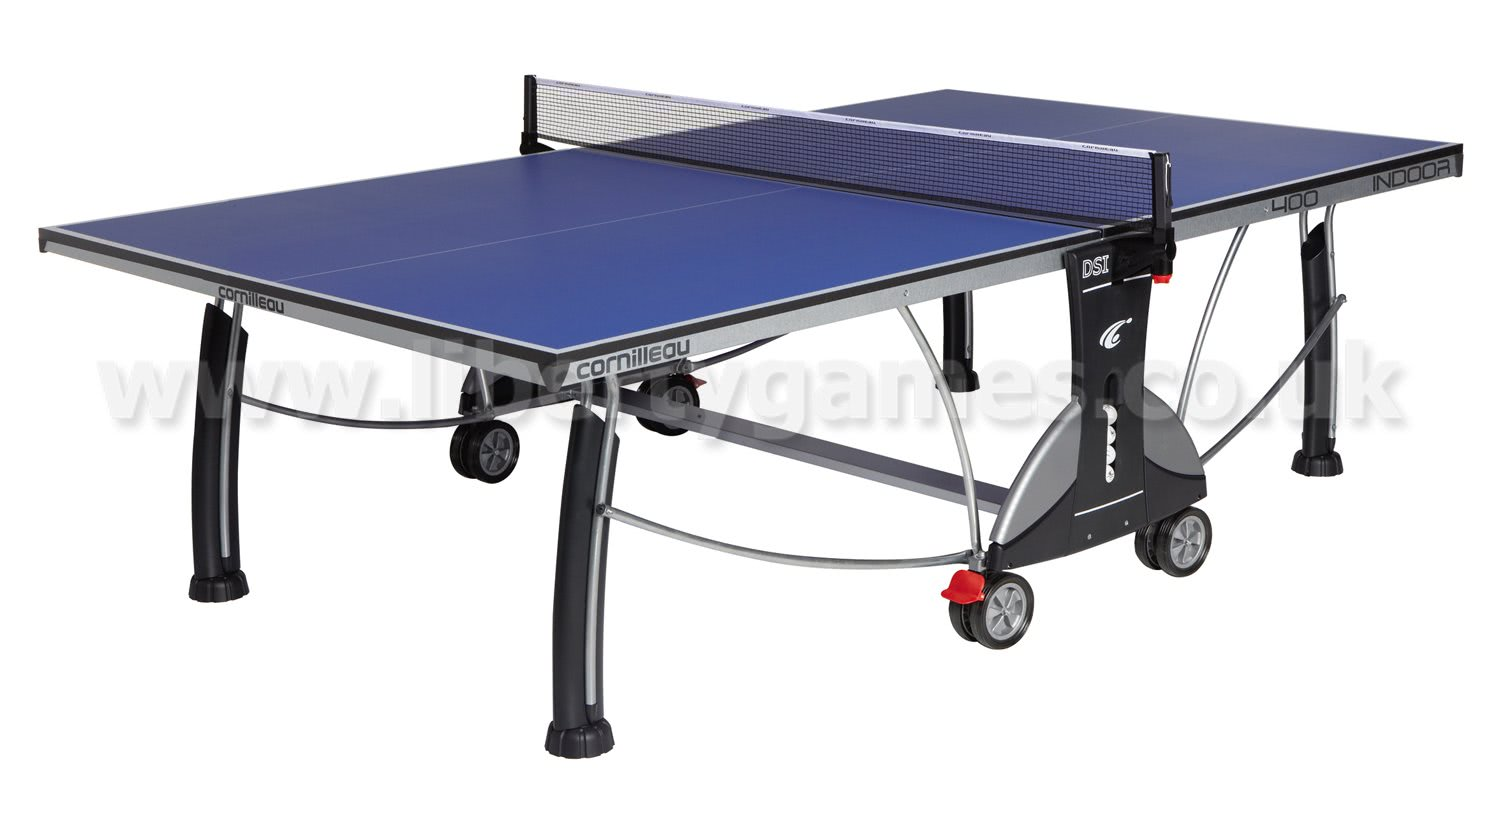 Cornilleau sport 400 rollaway liberty games for Table tennis